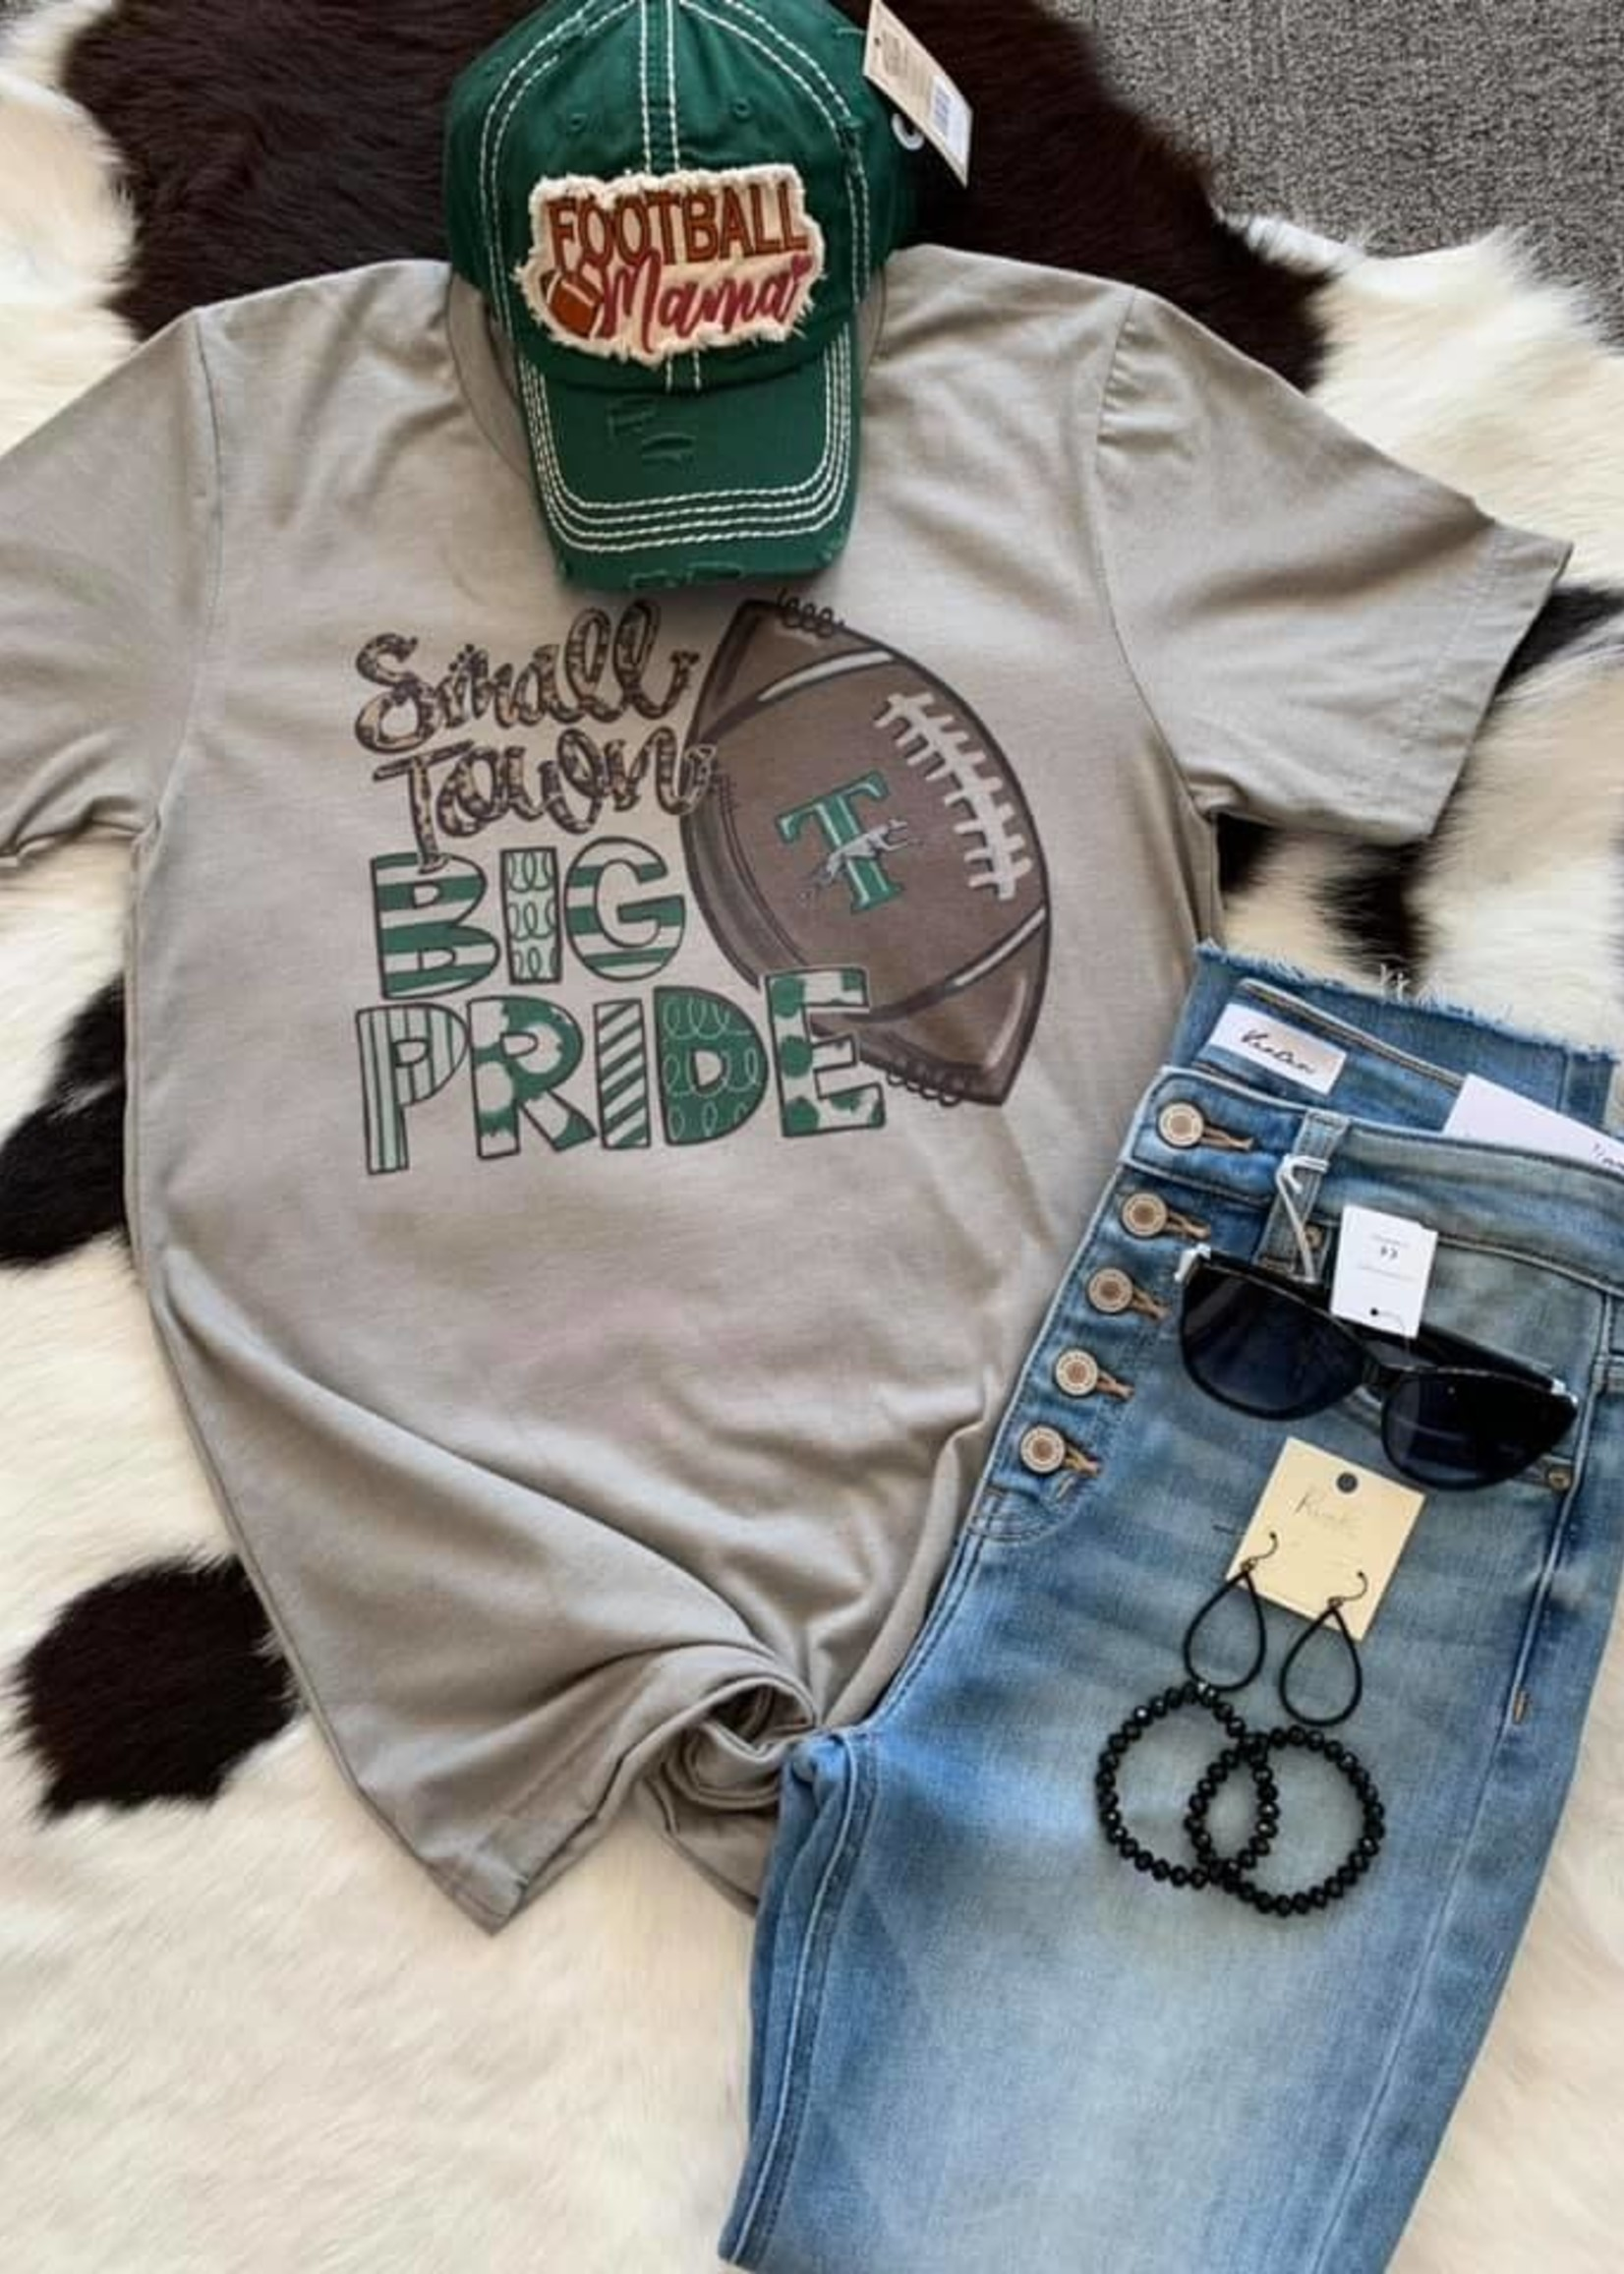 Empty Nest Creations Small Town Big Pride tee